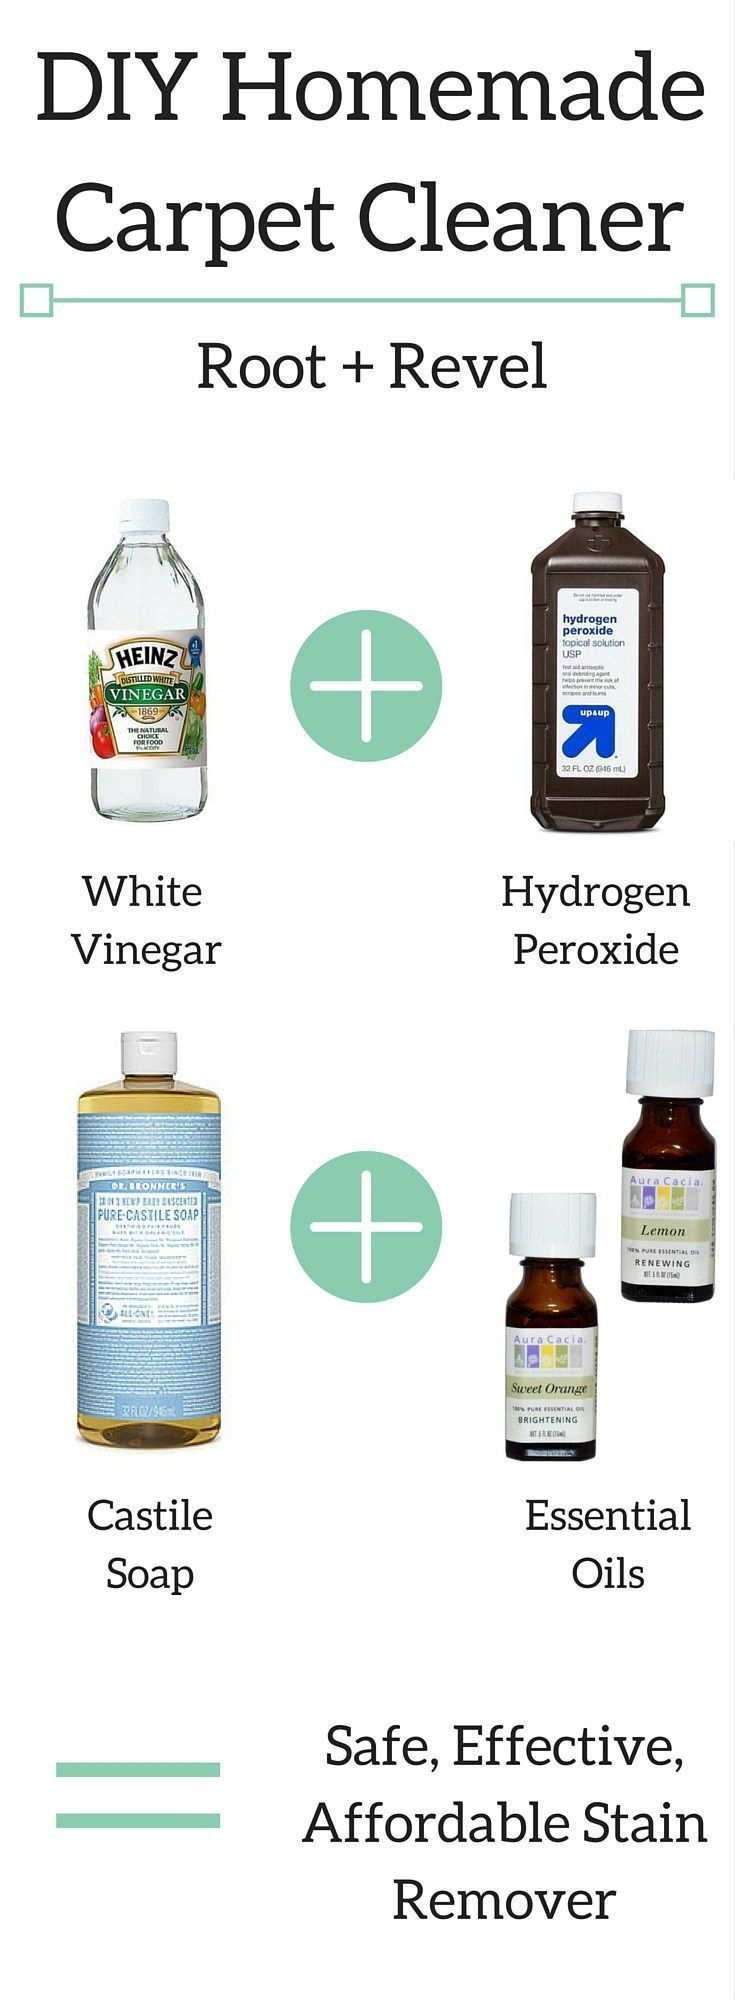 Toss toxic cleaners and dangerous chemicals! Remove stains with this safe, effective DIY homemade carpet cleaner. Quick + easy to make with pantry staples! | http://rootandrevel.com